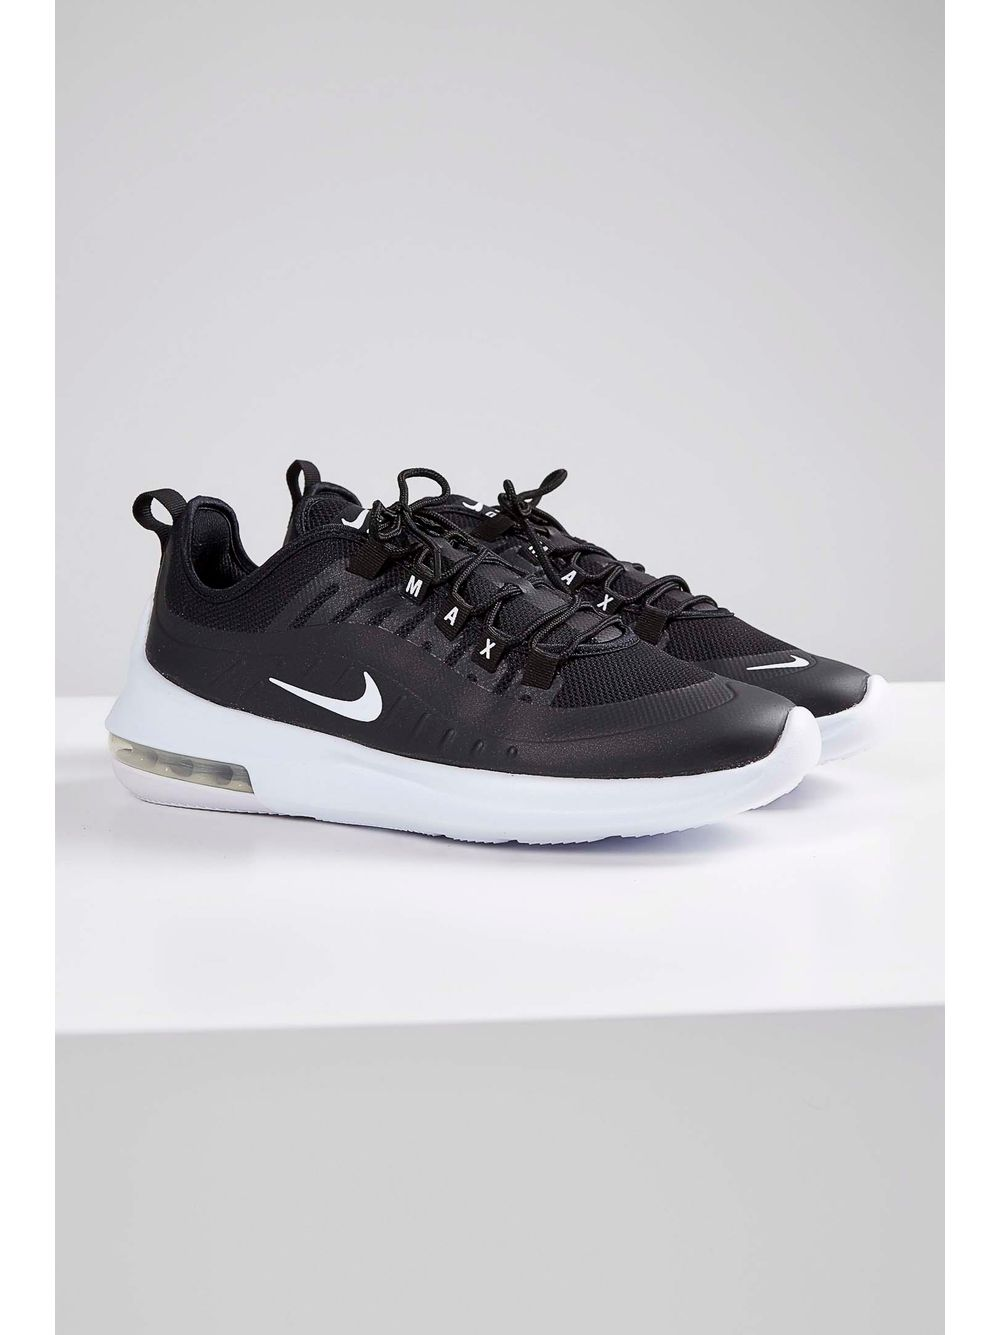 edfadf8e973b2 Previous. Tenis-Corrida-Nike-Air-Max-Axis-Preto ...